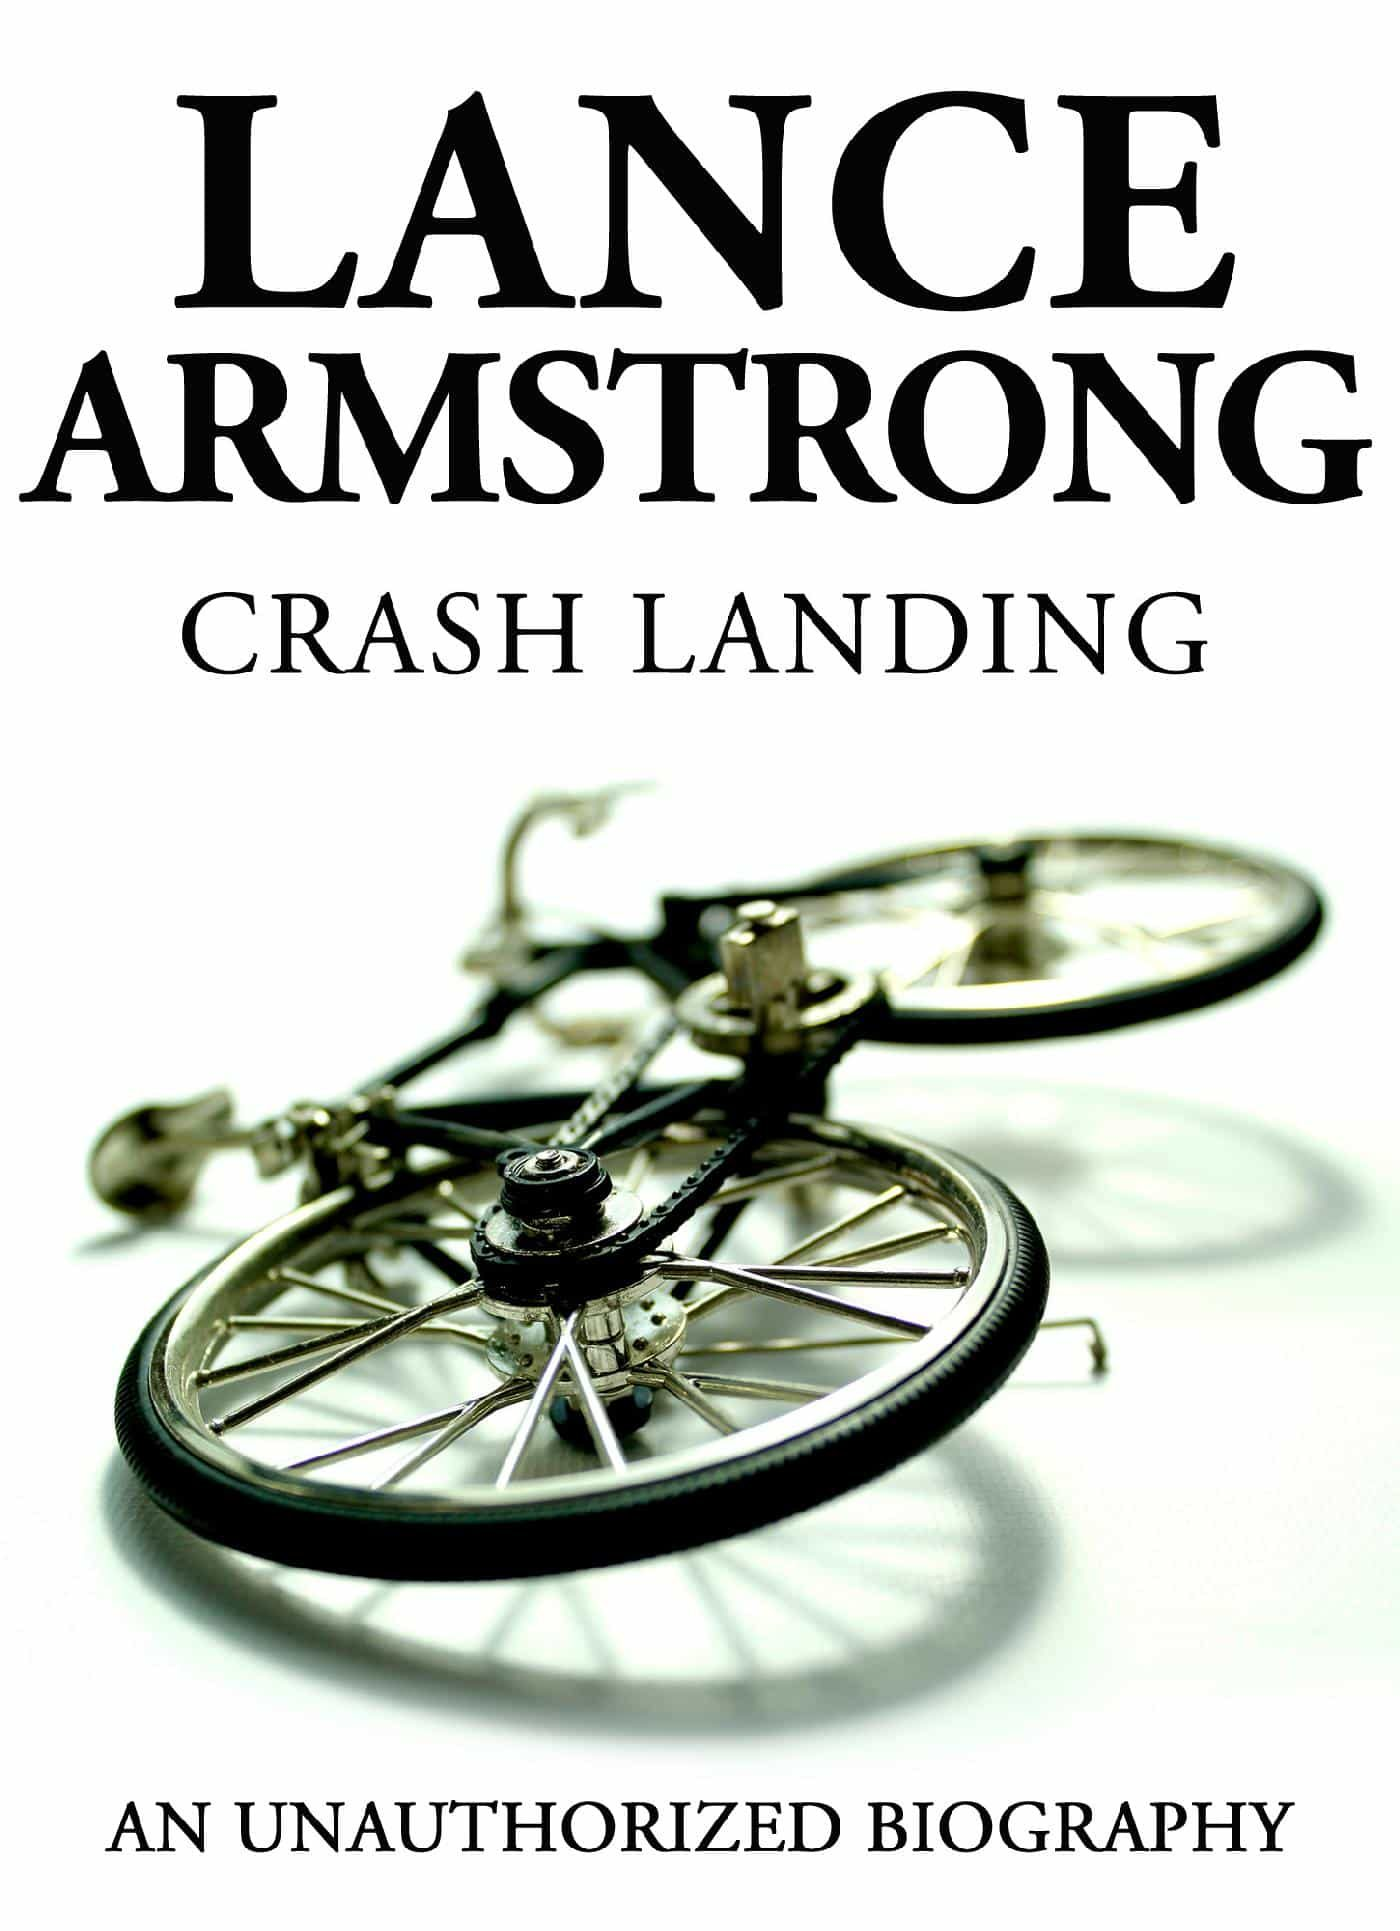 Lance Armstrong Libros Lance Armstrong Crash Landing Ebook Belmont And Belcourt Biographies Descargar Libro Pdf O Epub 9781619843332